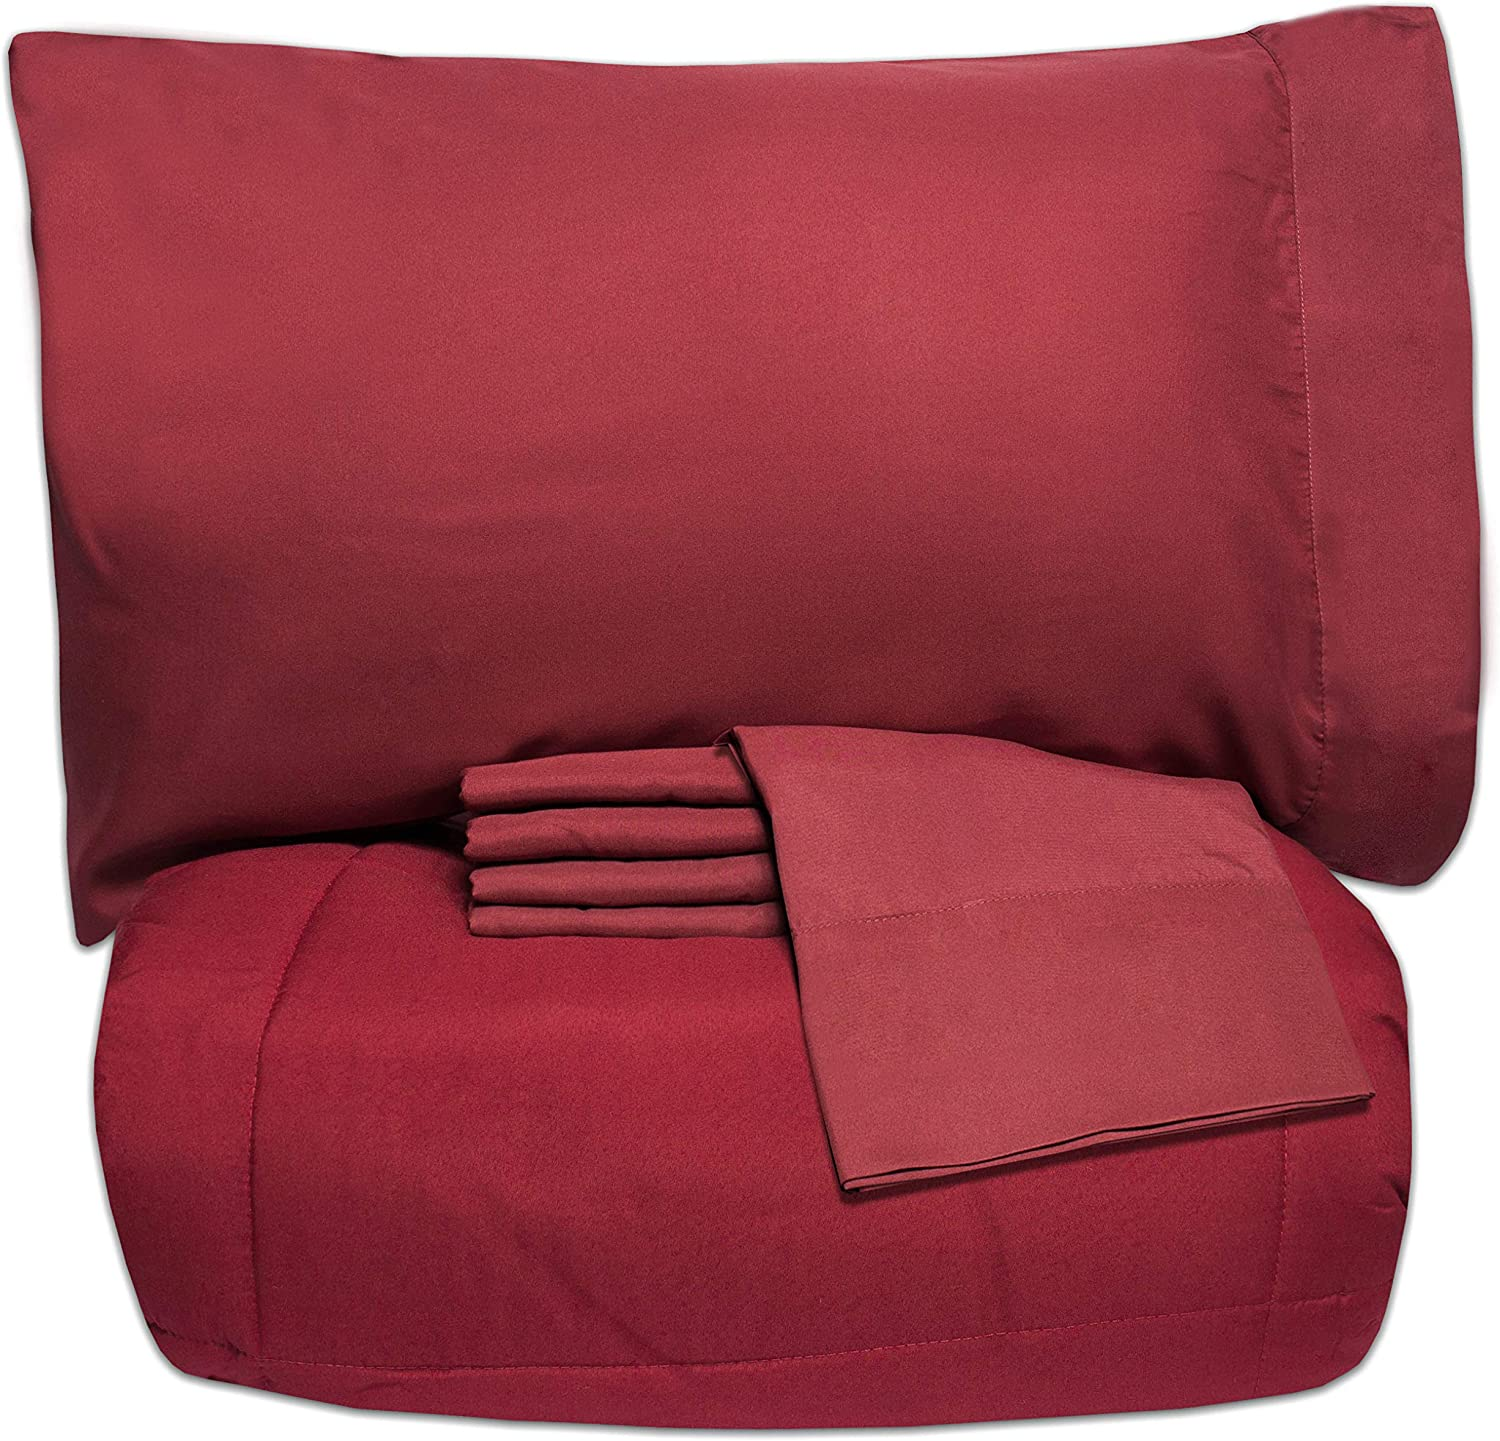 Sweet Home Collection 5 Piece Bag Comforter Set Solid Color All Season Soft Down Alternative Blanket & Luxurious Microfiber Bed Sheets, Twin, Burgundy